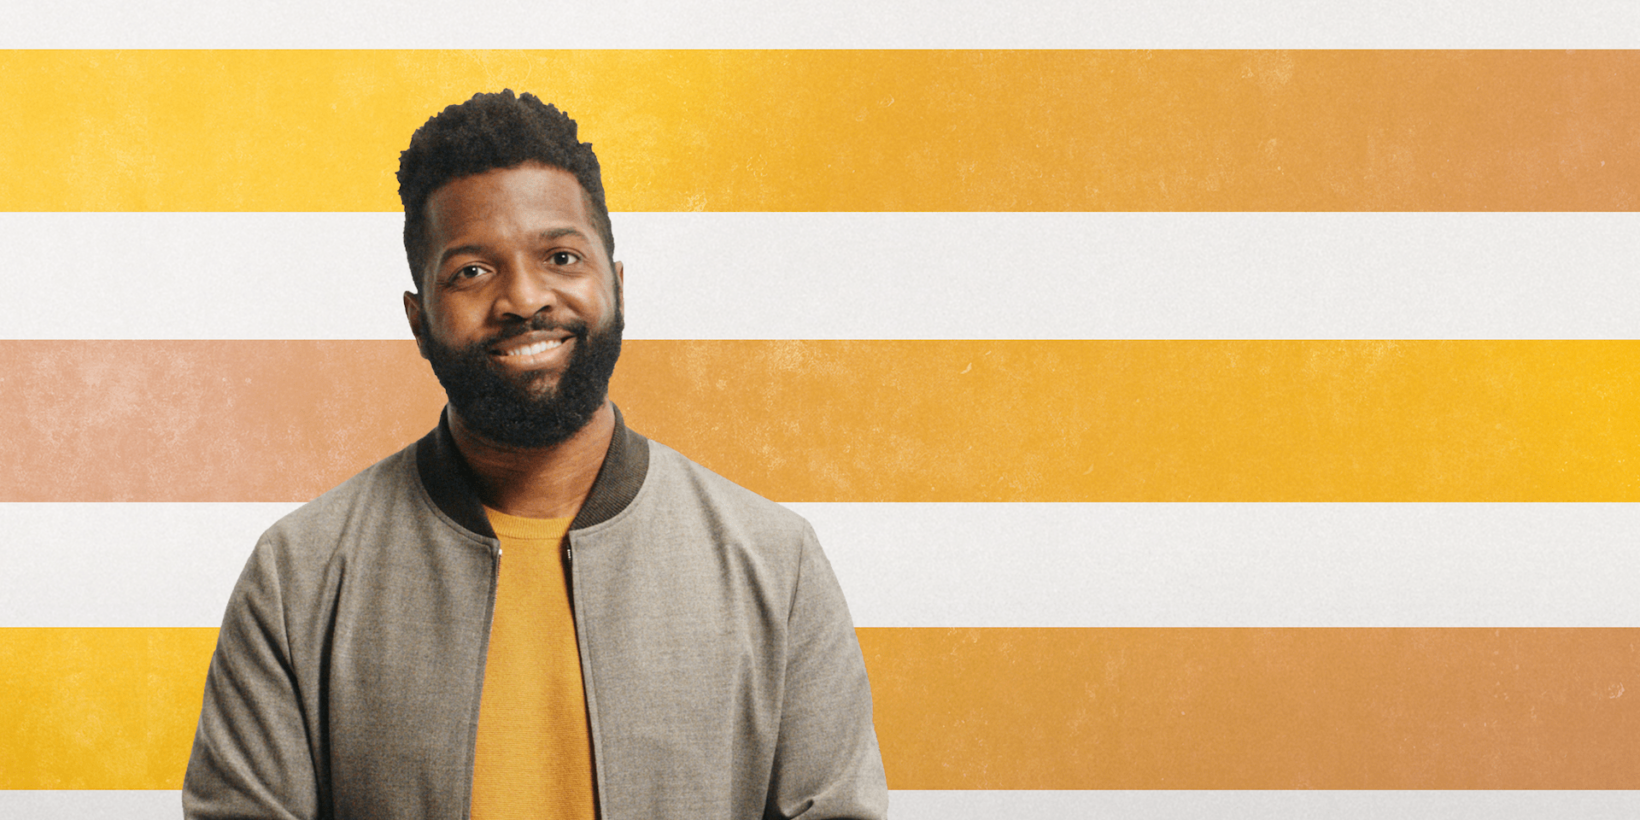 Baratunde Thurston standing in front of striped background